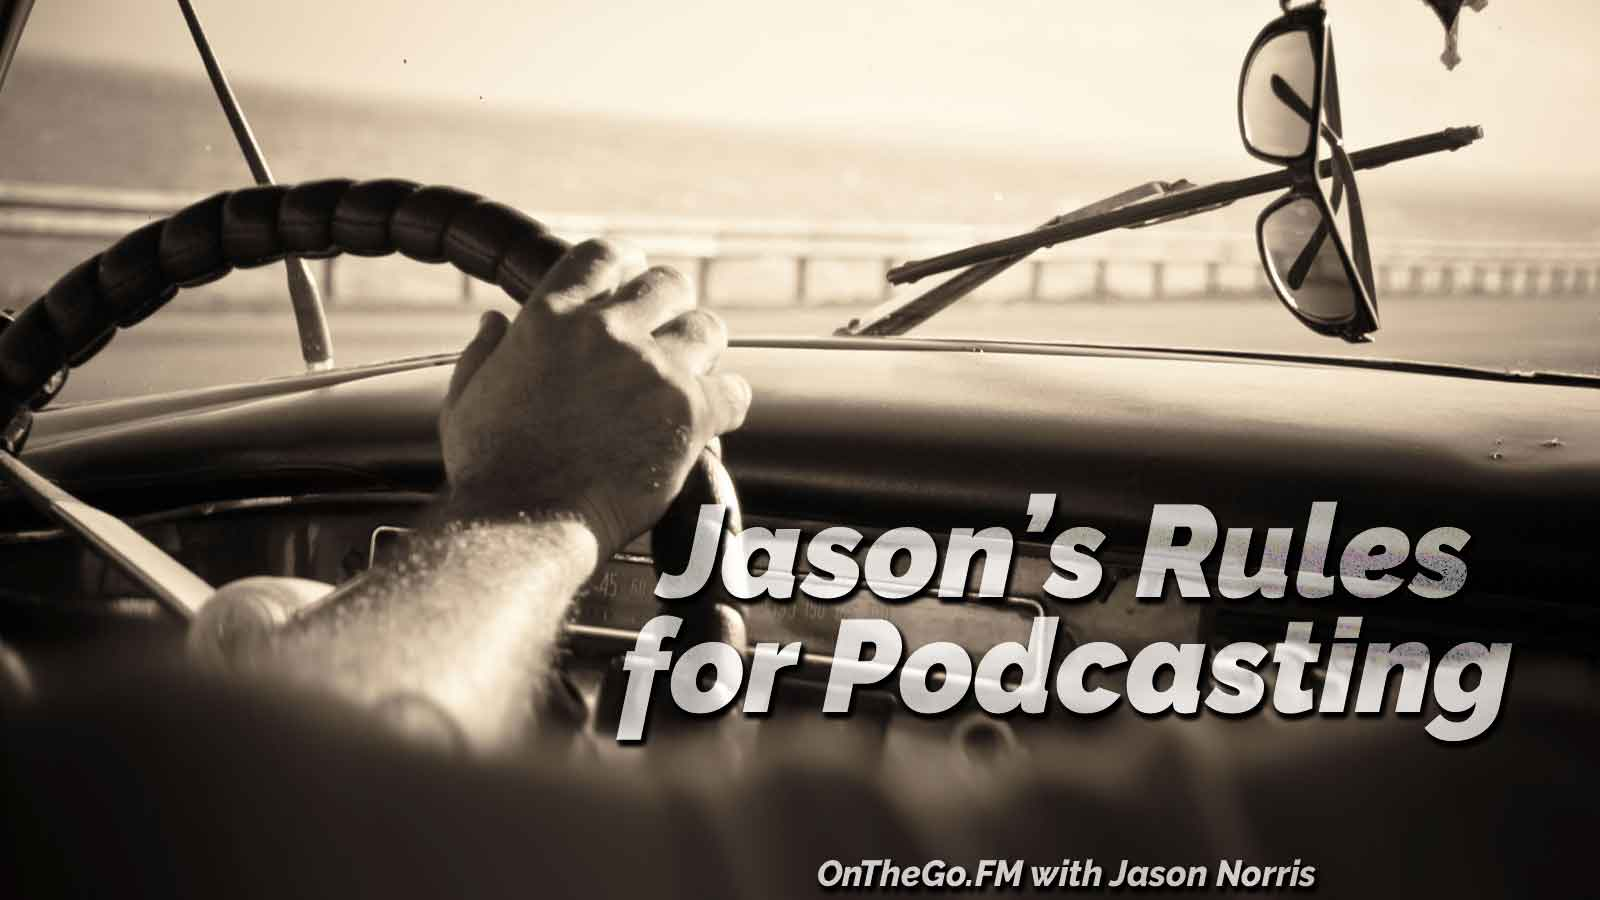 Jason's Rules for Podcasting by Jason E. Norris from OnTheGo.FM